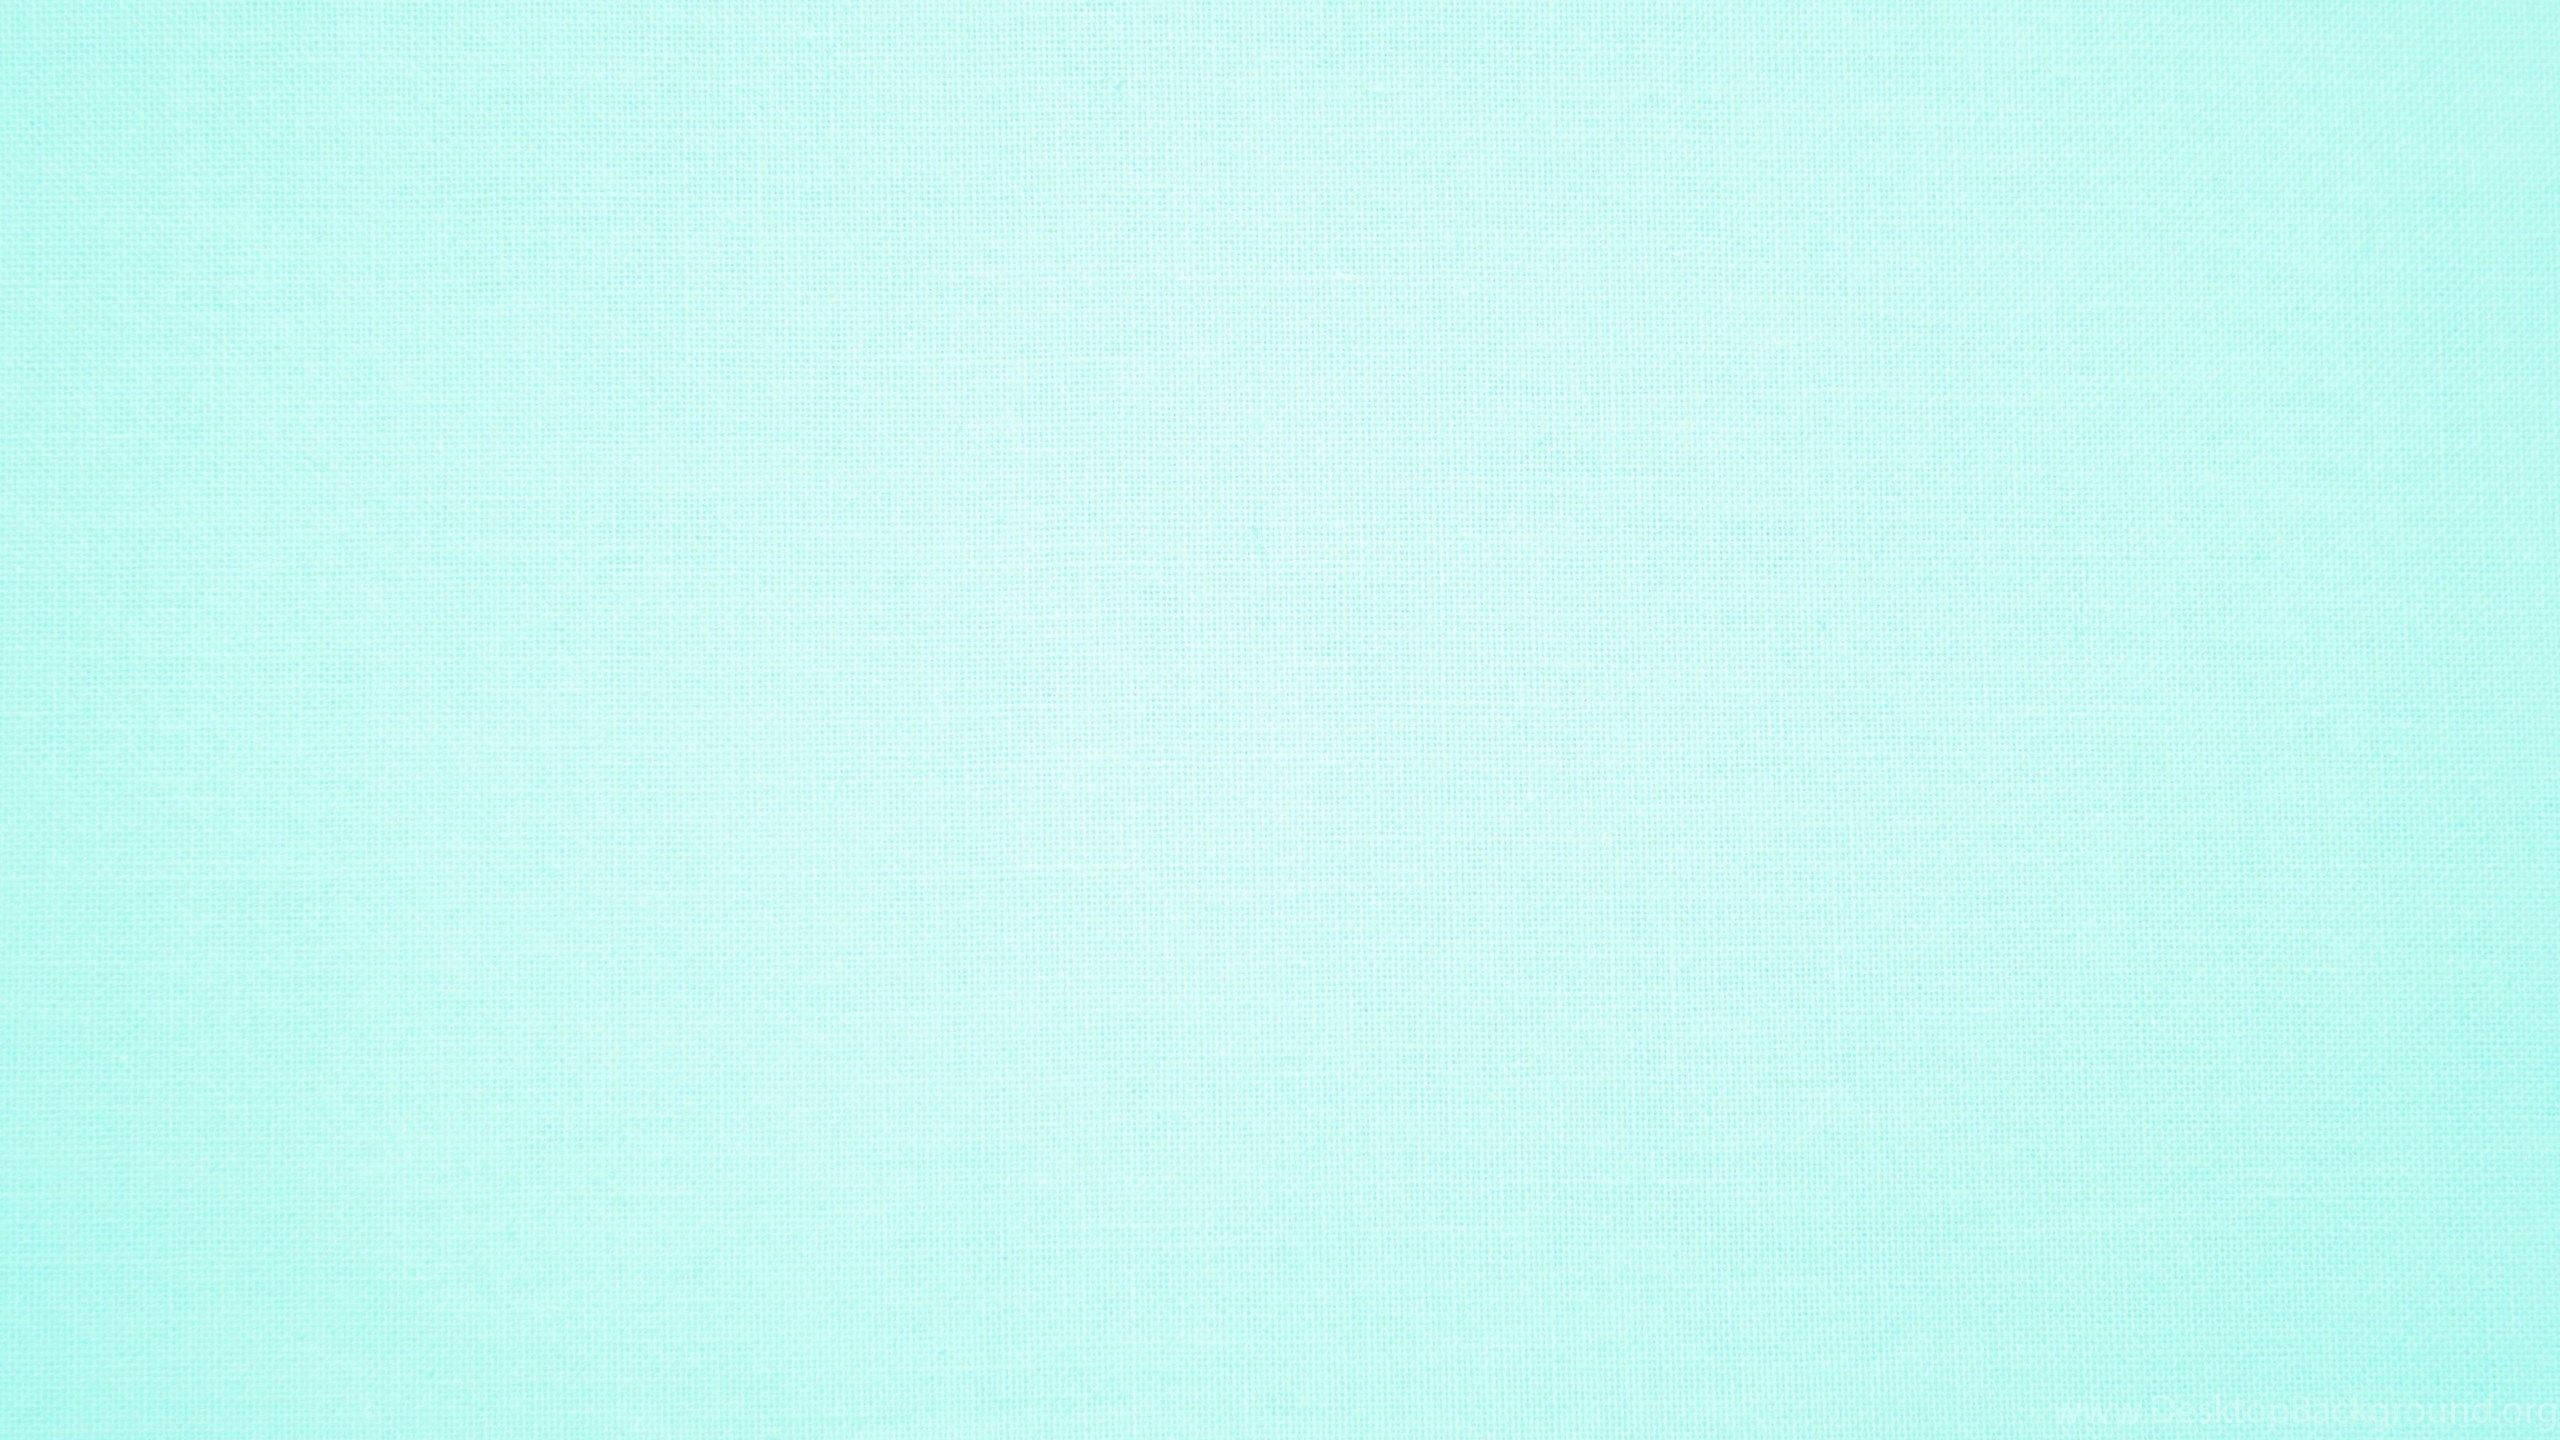 2560x1440, Gallery For Plain Pastel Colors Wallpapers - Colorfulness - HD Wallpaper